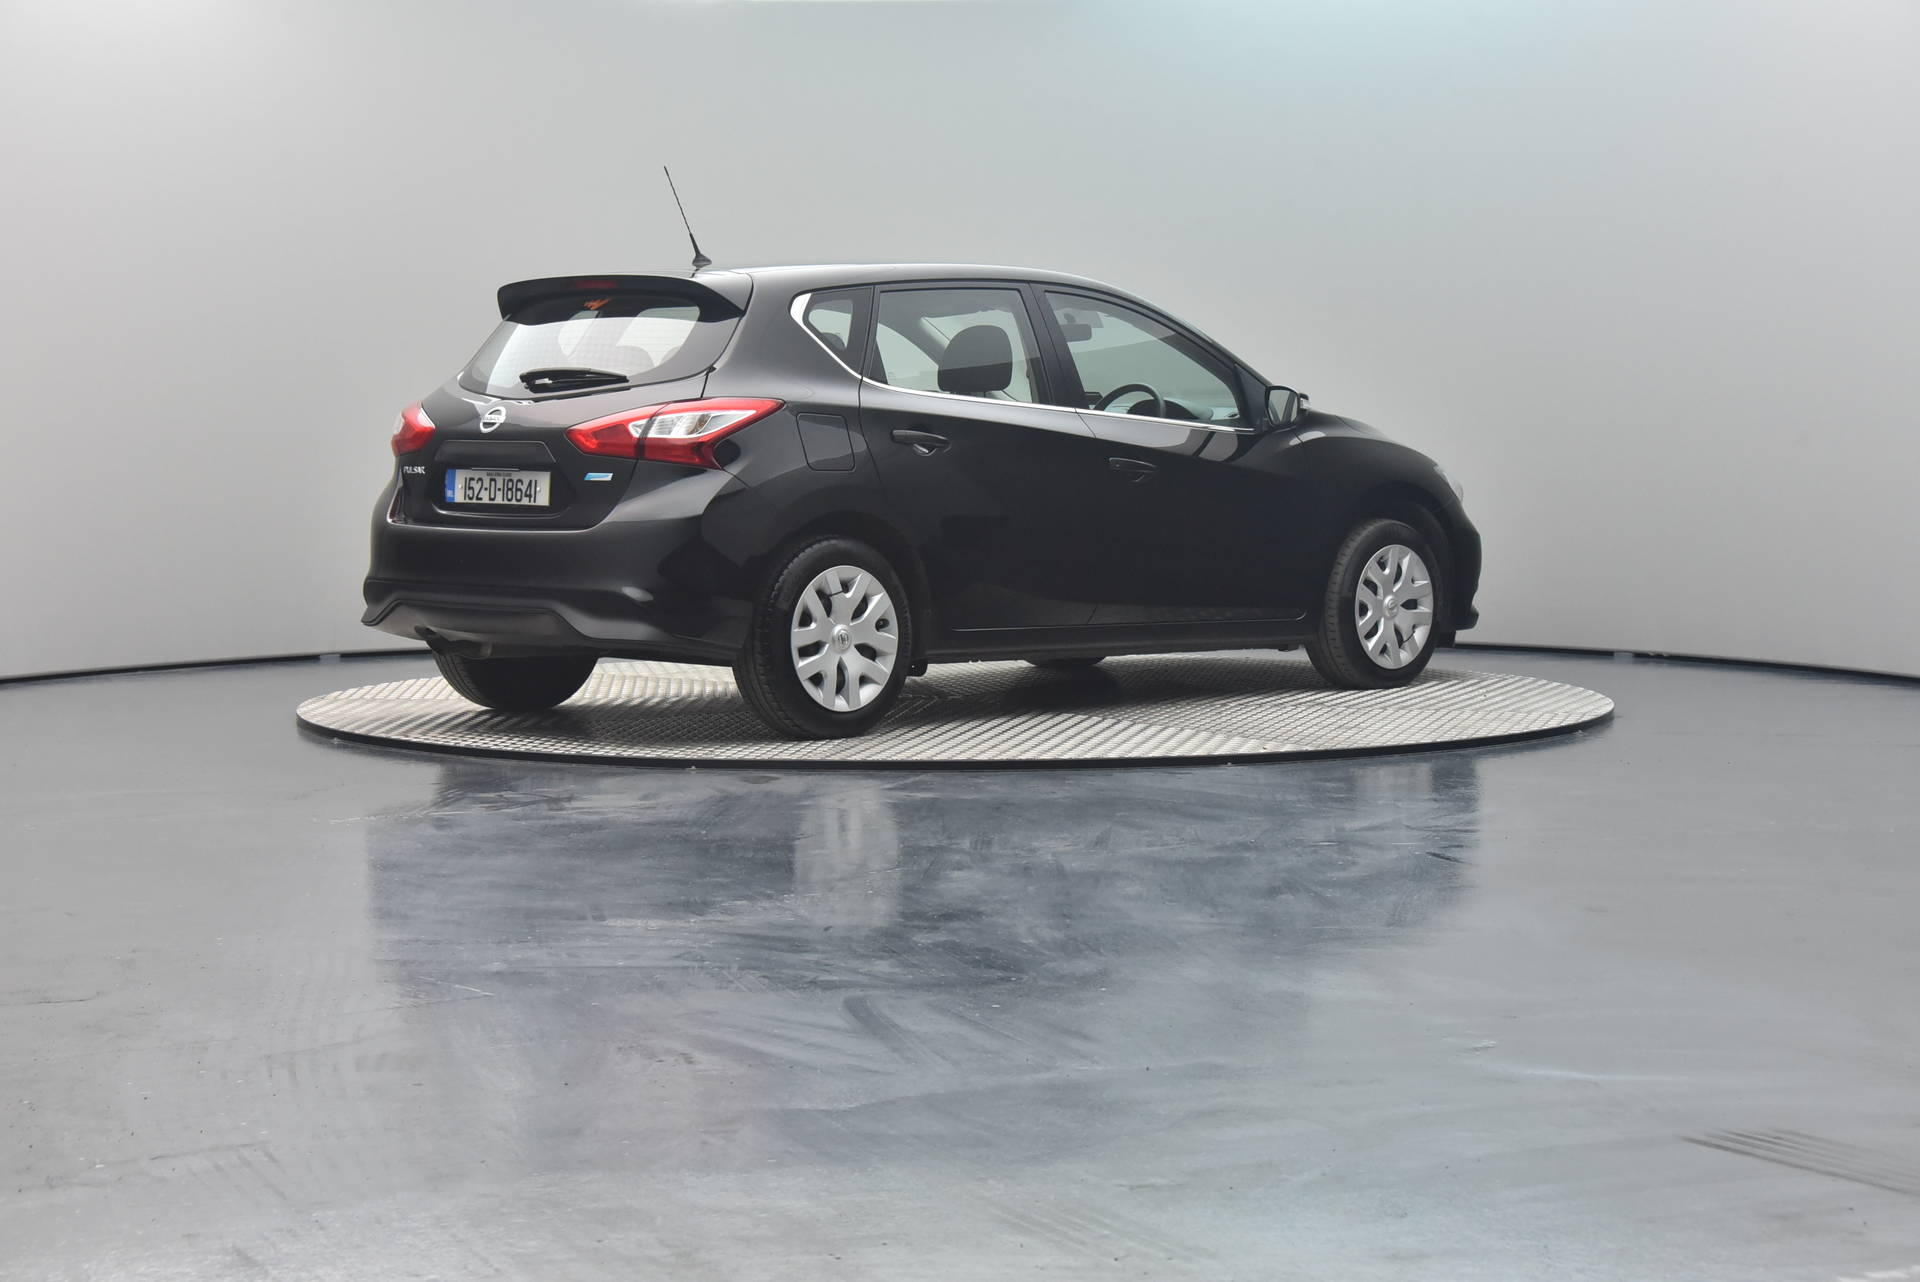 Nissan Pulsar 1.5 Dci Xe, 360-image27